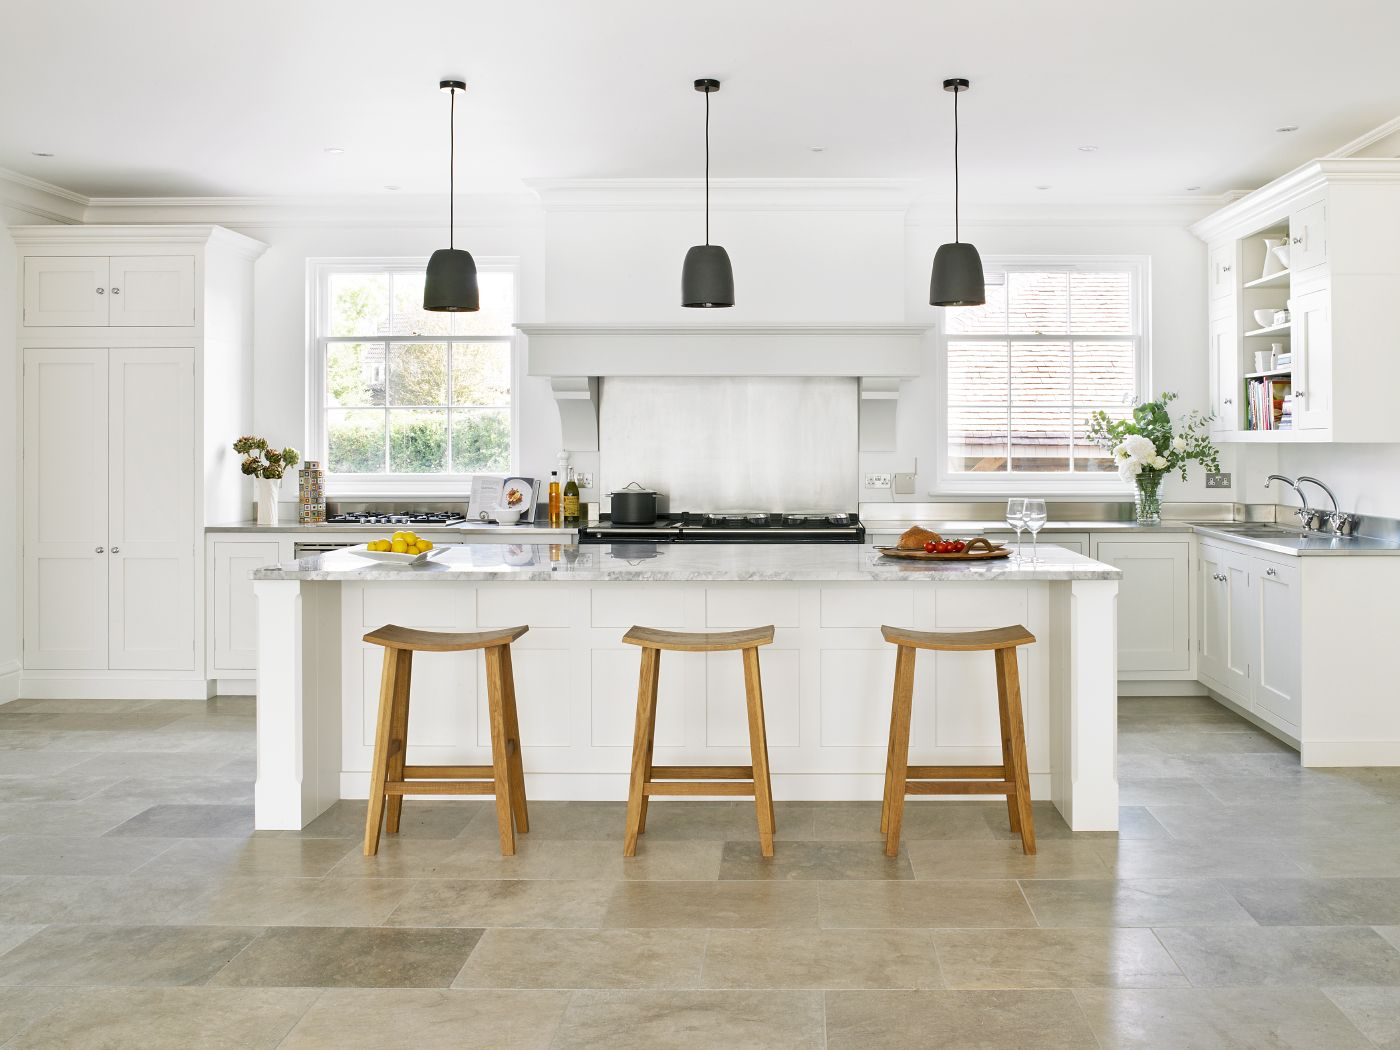 Felsted Kitchen - bespoke kitchen design with shaker style cabinets ...